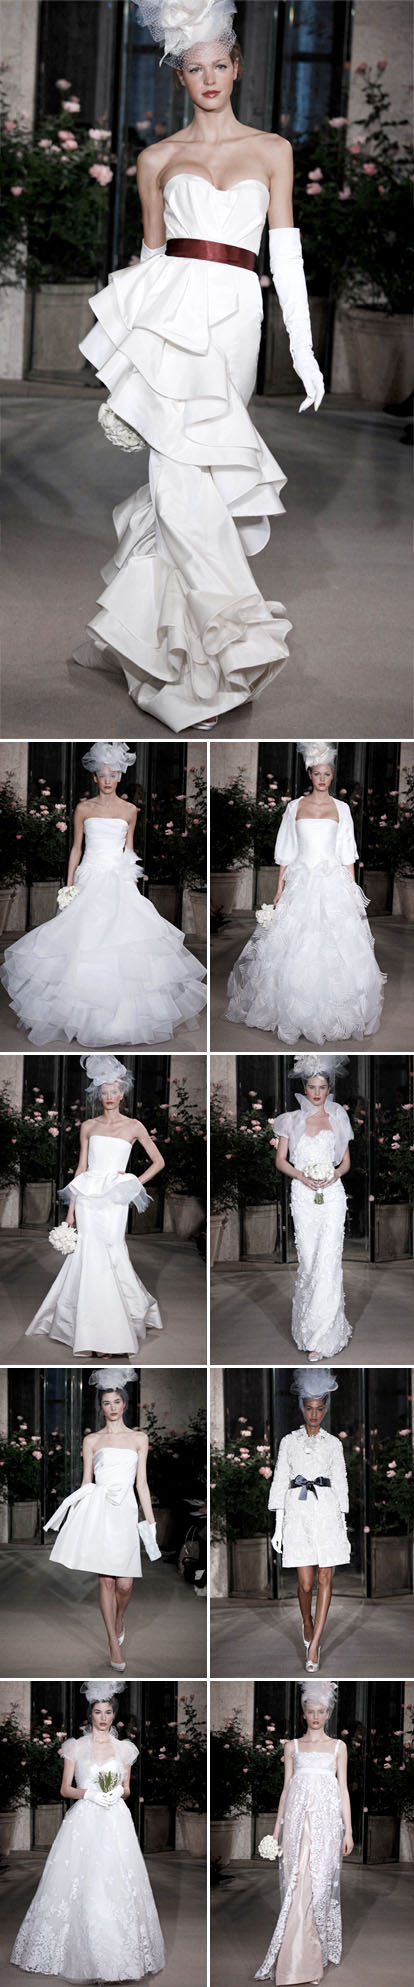 Oscar de la Renta spring 2010 bridal collection, runway highlights